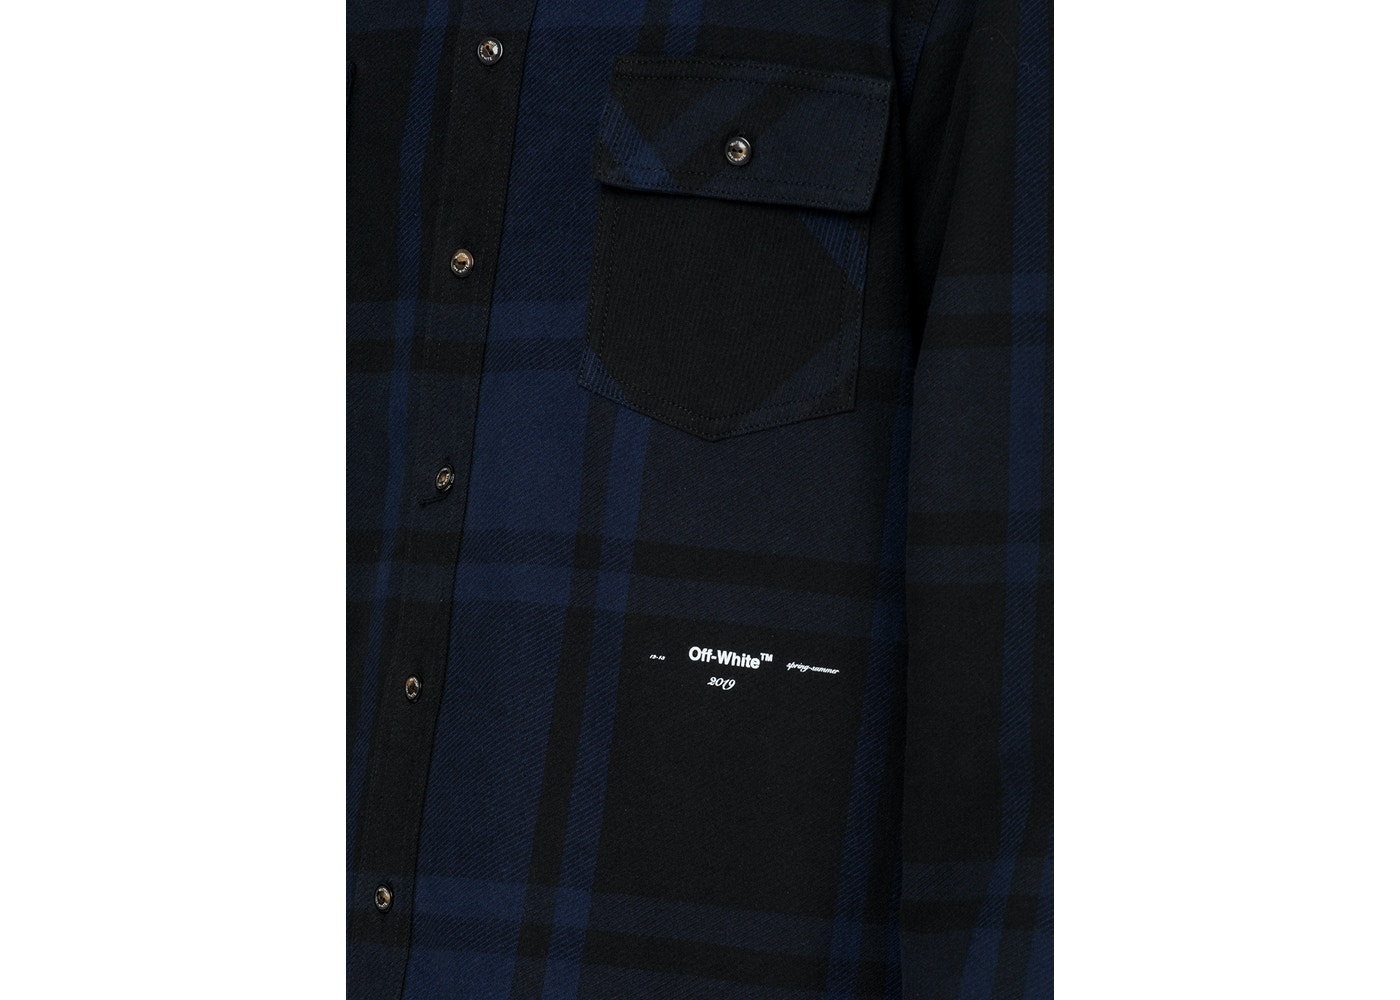 dbf59143 OFF-WHITE Embellished Checkered Flannel Shirt Blue/Black - SS19